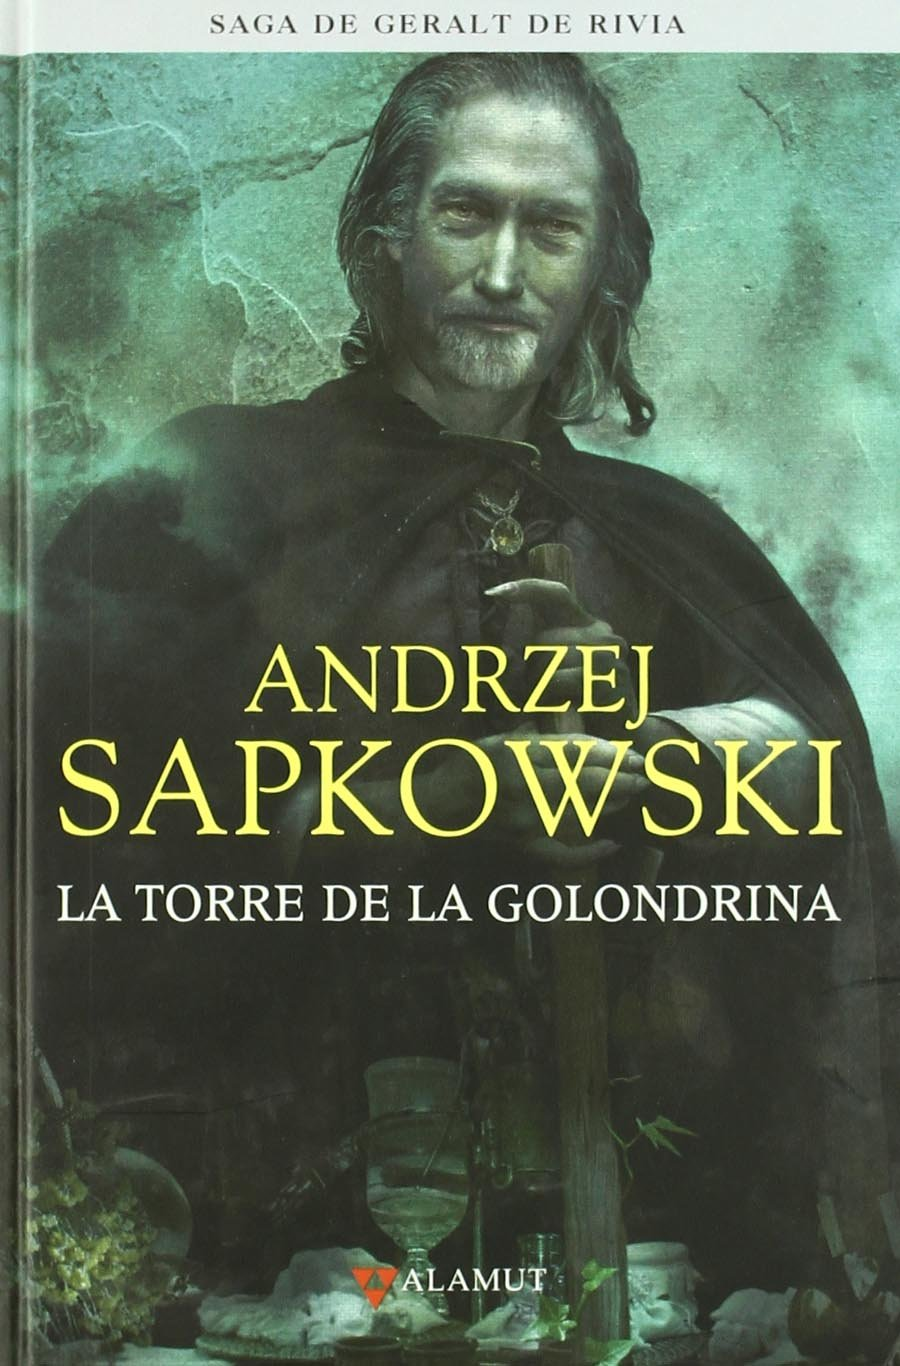 the witcher orden libros